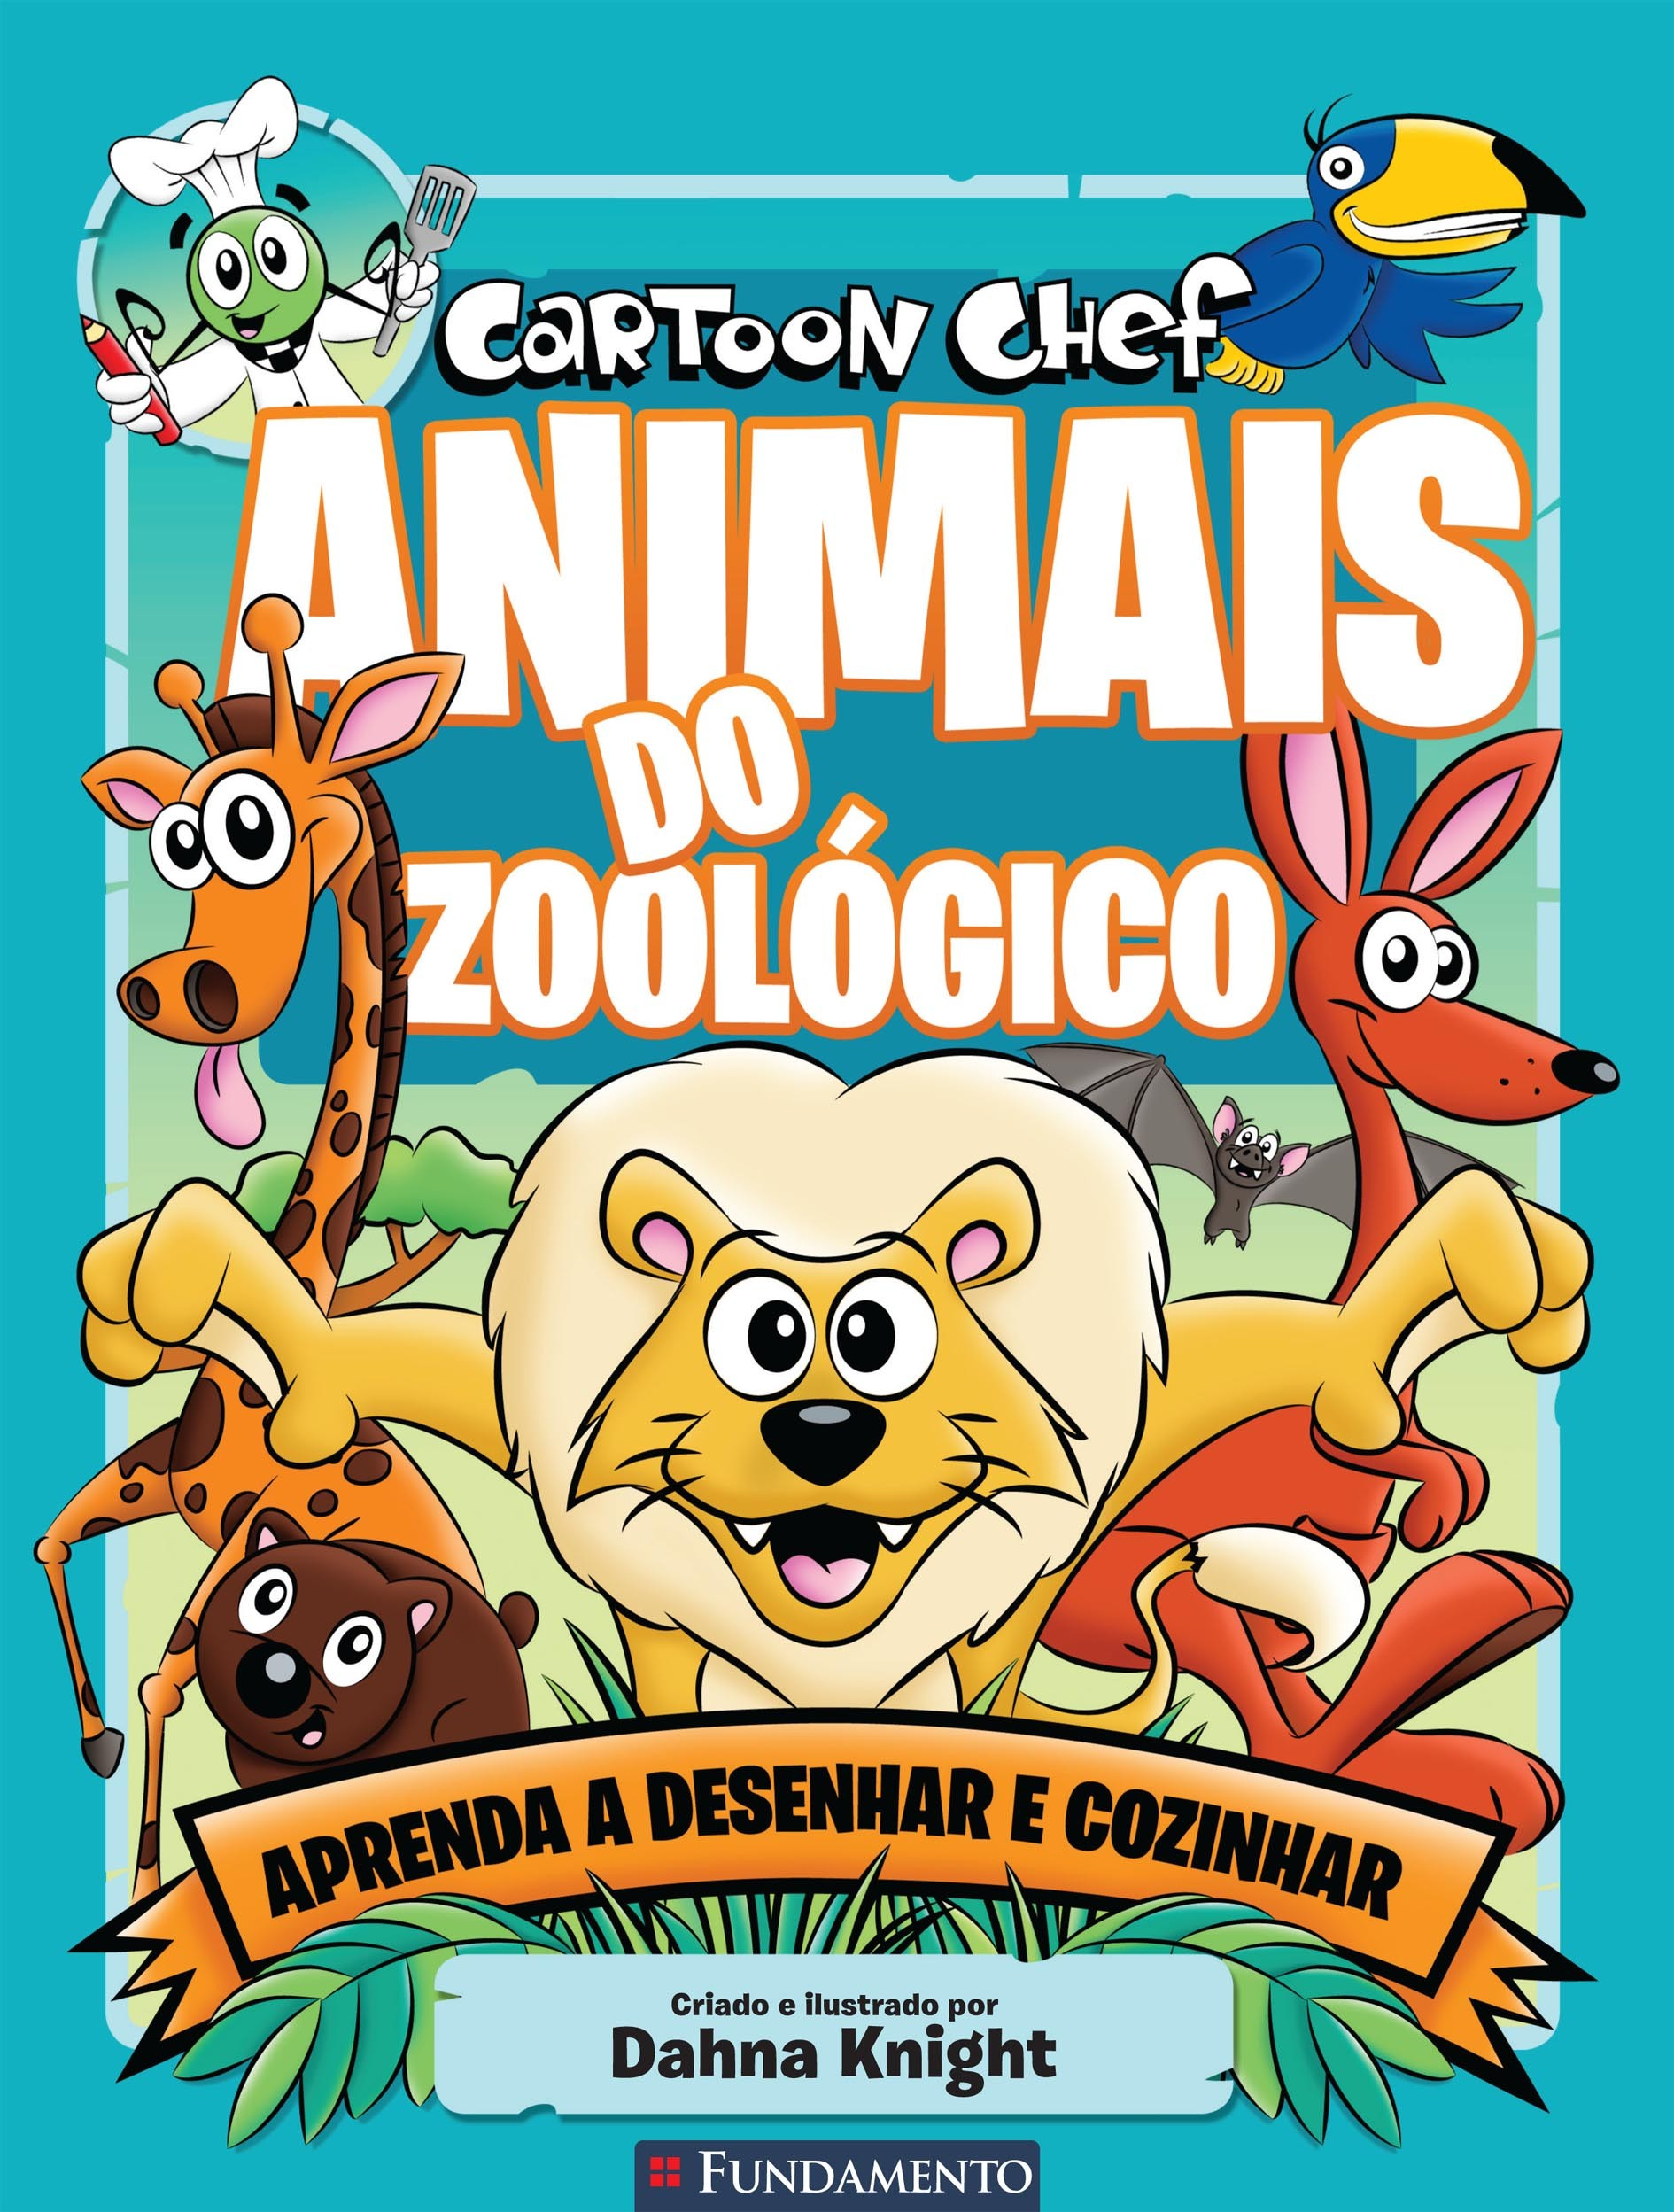 Cartoon Chef - Animais do zoológico